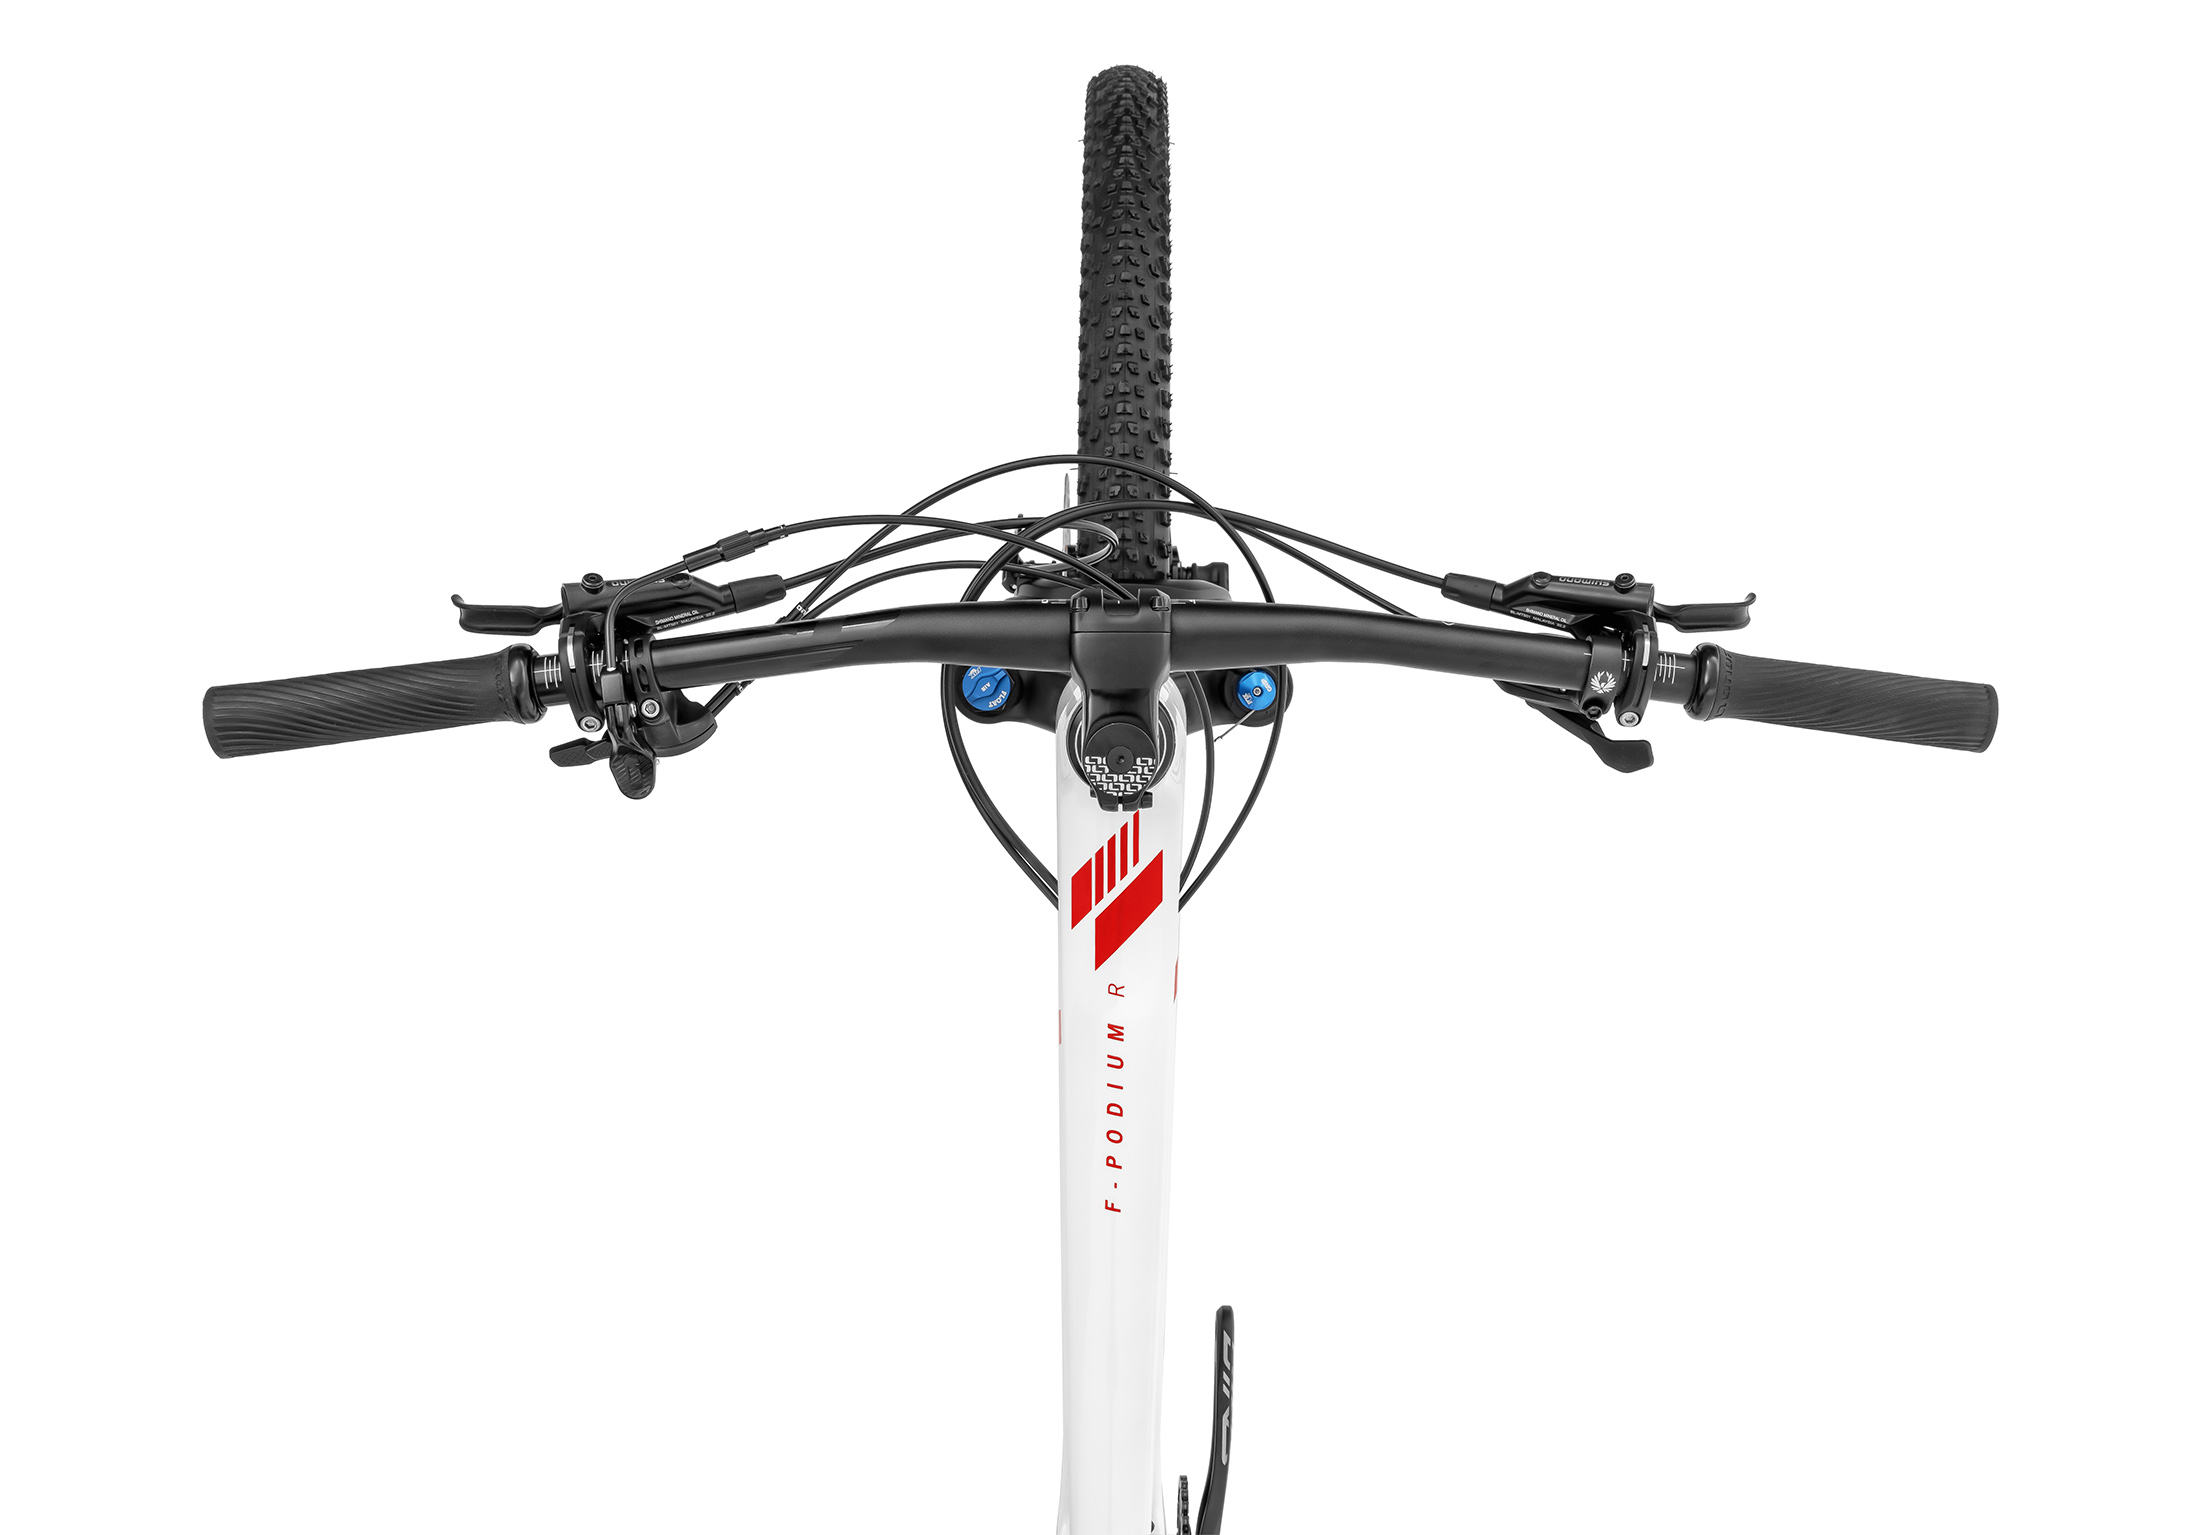 F-Podium Carbon DC R - DT SWISS, white/carbon/flame red, 2020